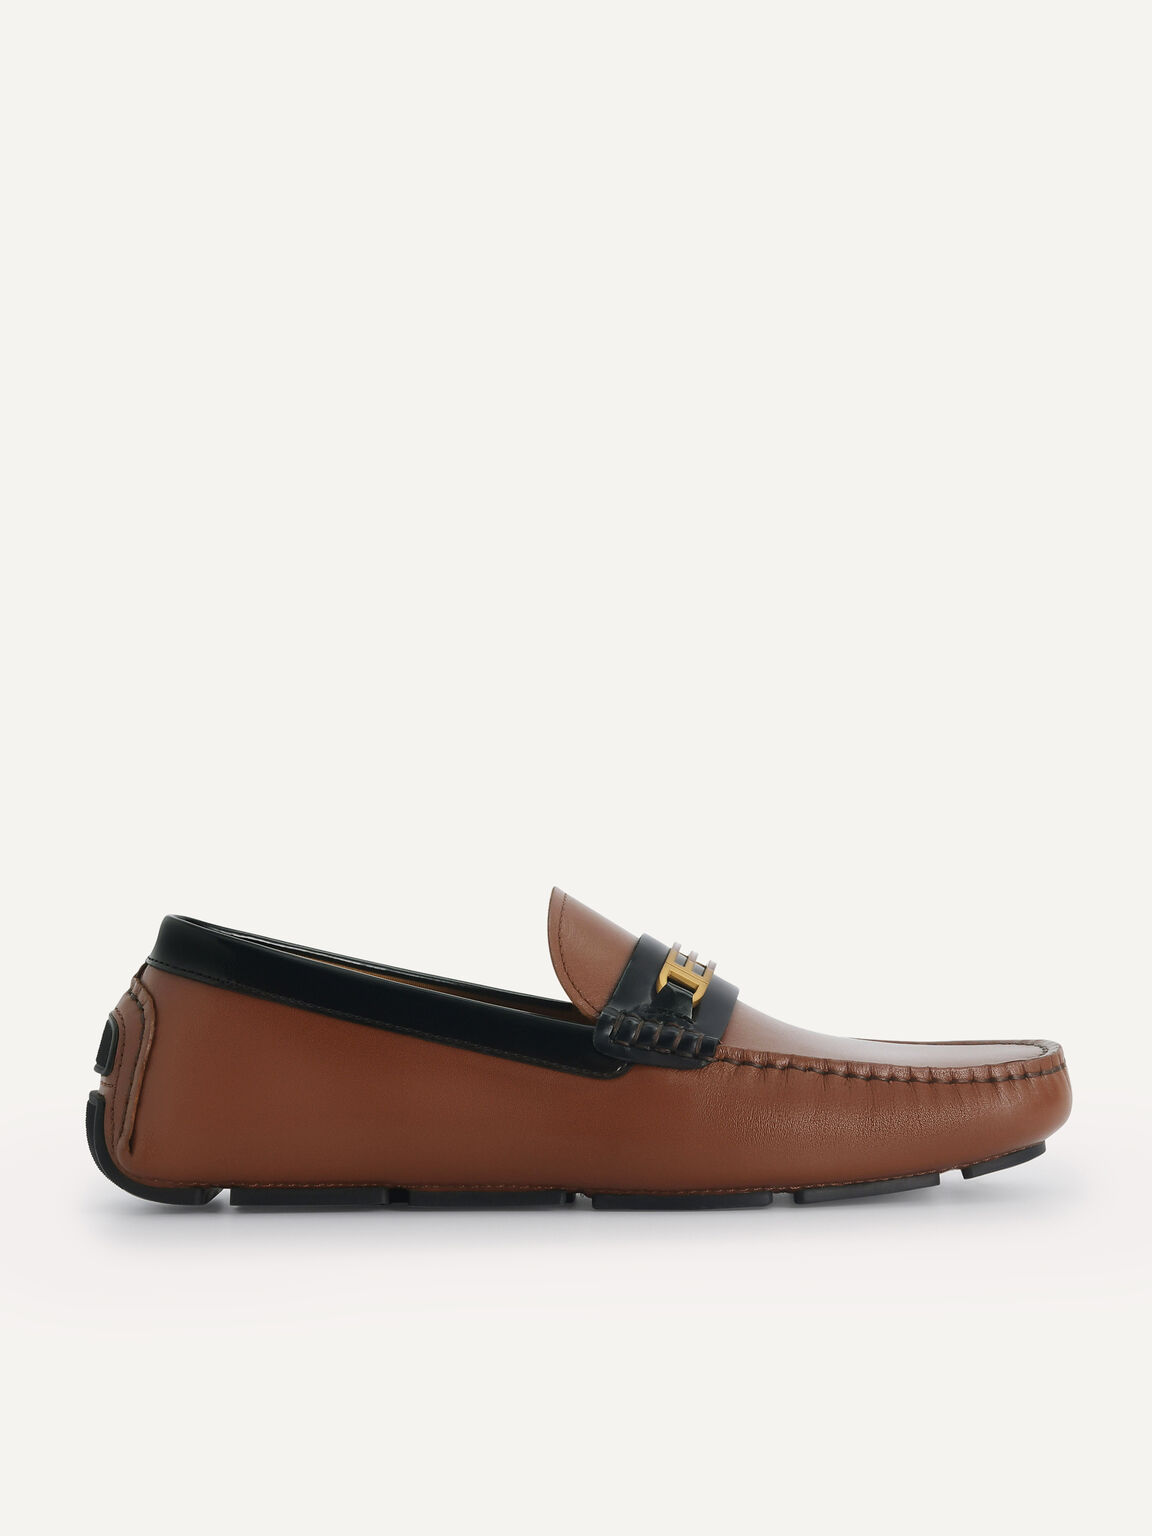 Leather Moccasins with Gold Bit, Brown, hi-res